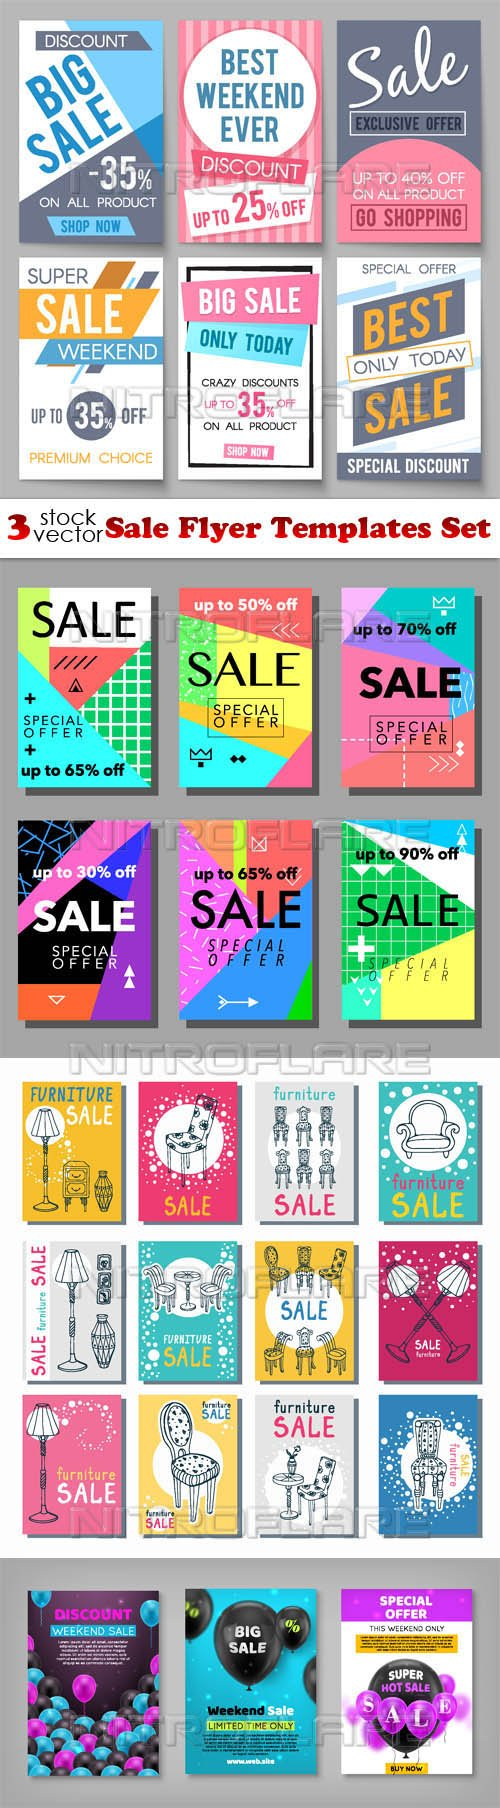 Vectors - Sale Flyer Templates Set